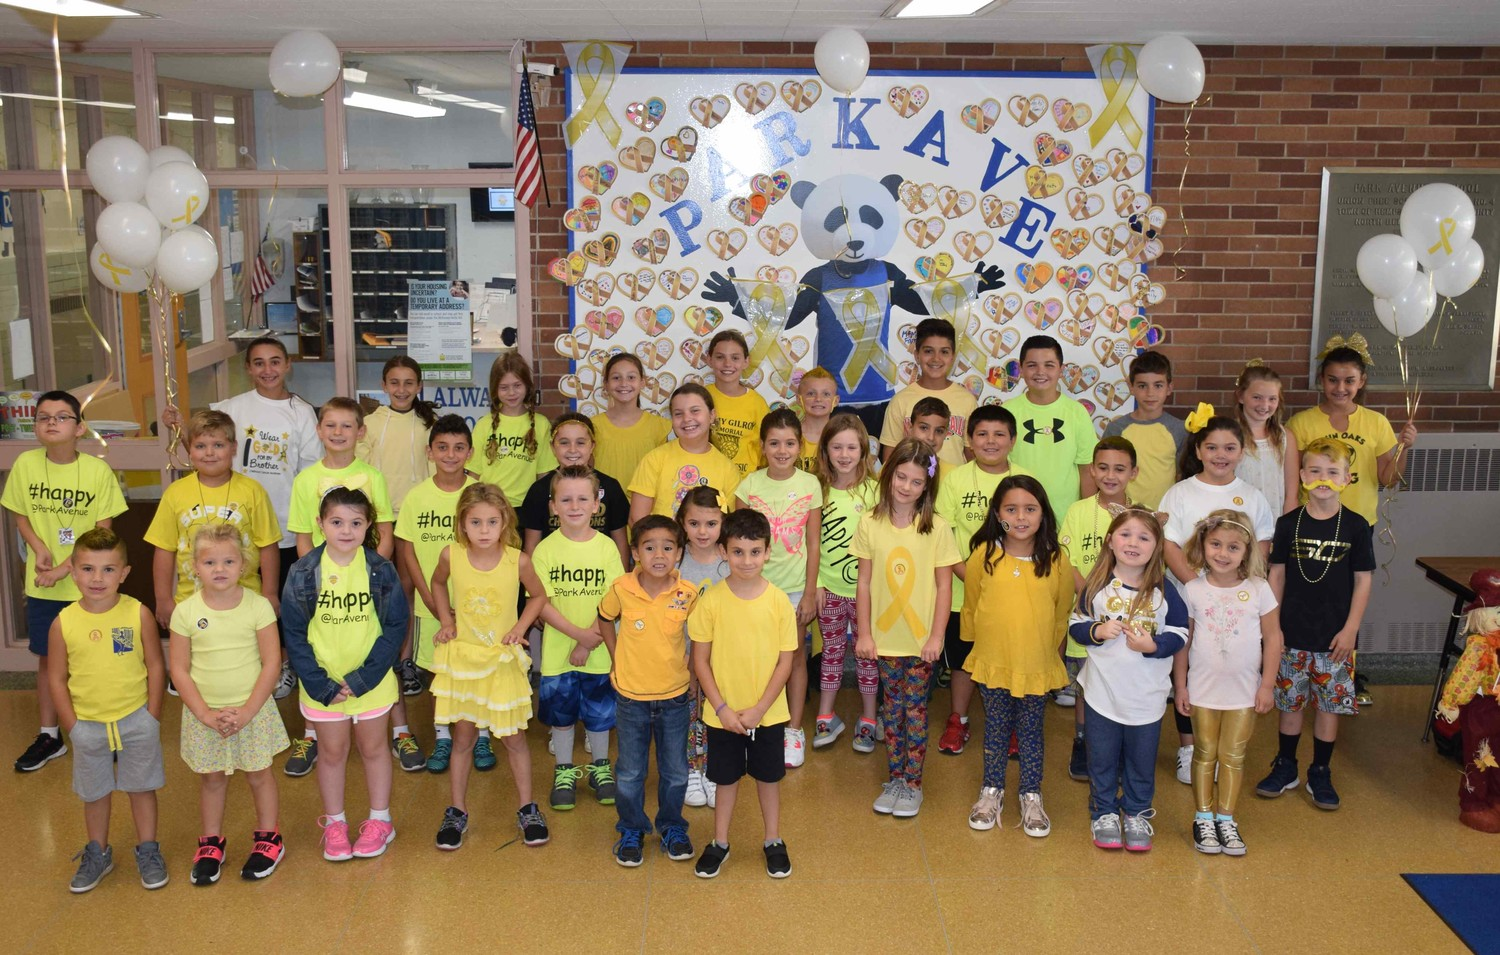 Park Avenue Elementary School students from kindergarten through sixth grade supported the cause.